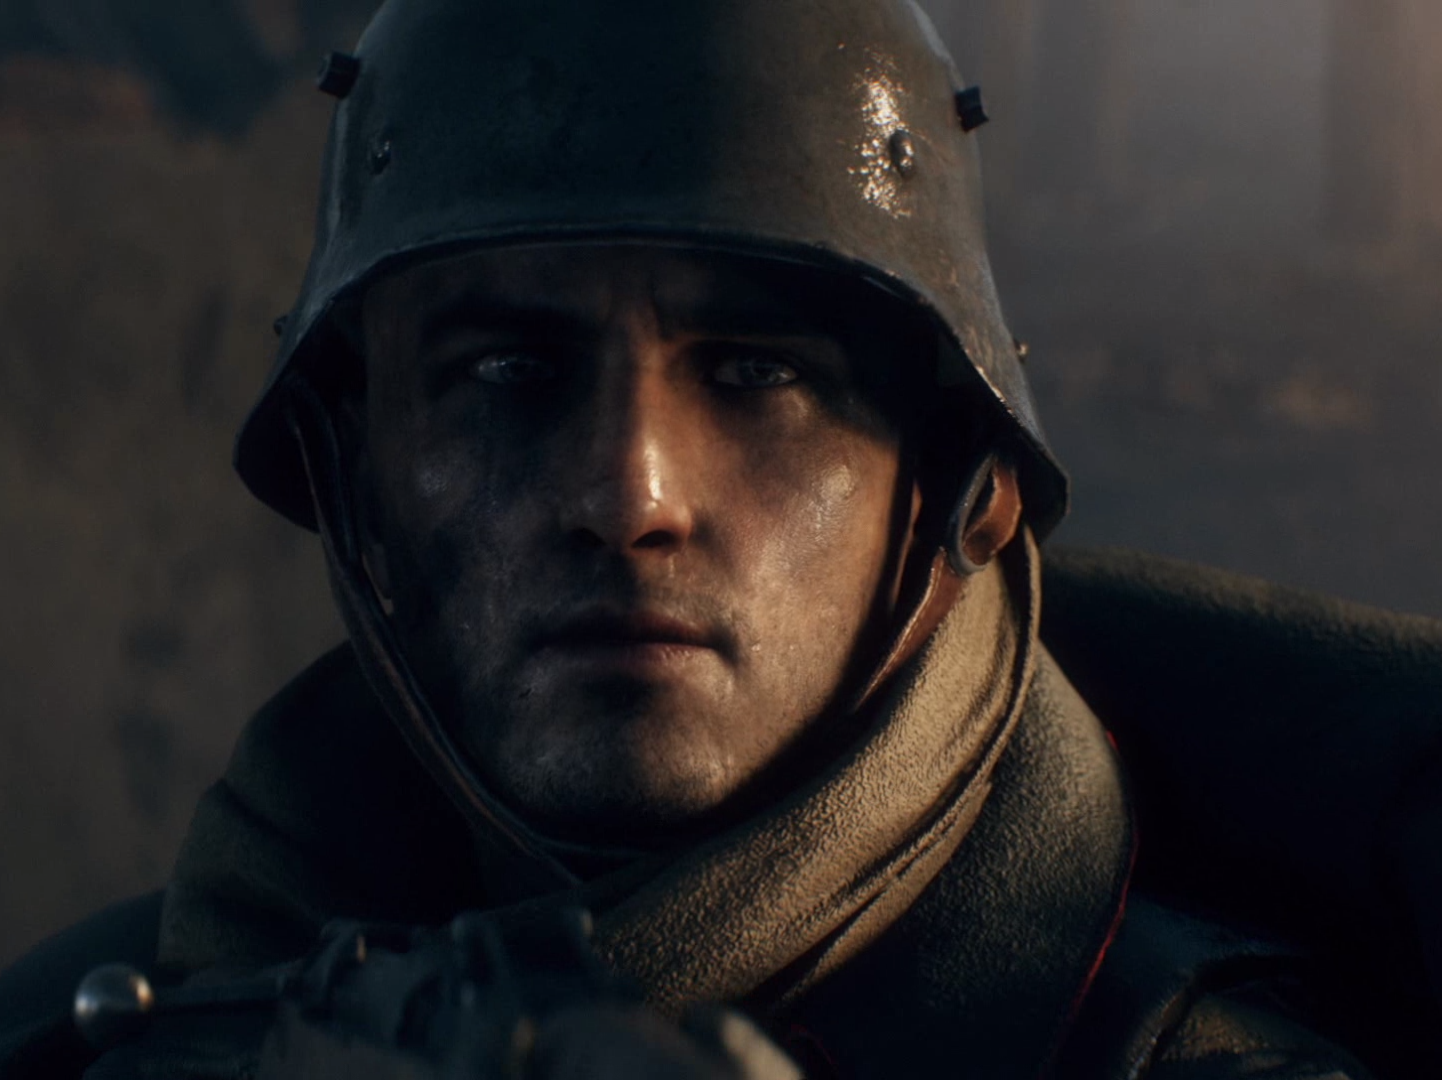 A 'Battlefield 1' Bayonet Charge Can Turn the Tide of Battle